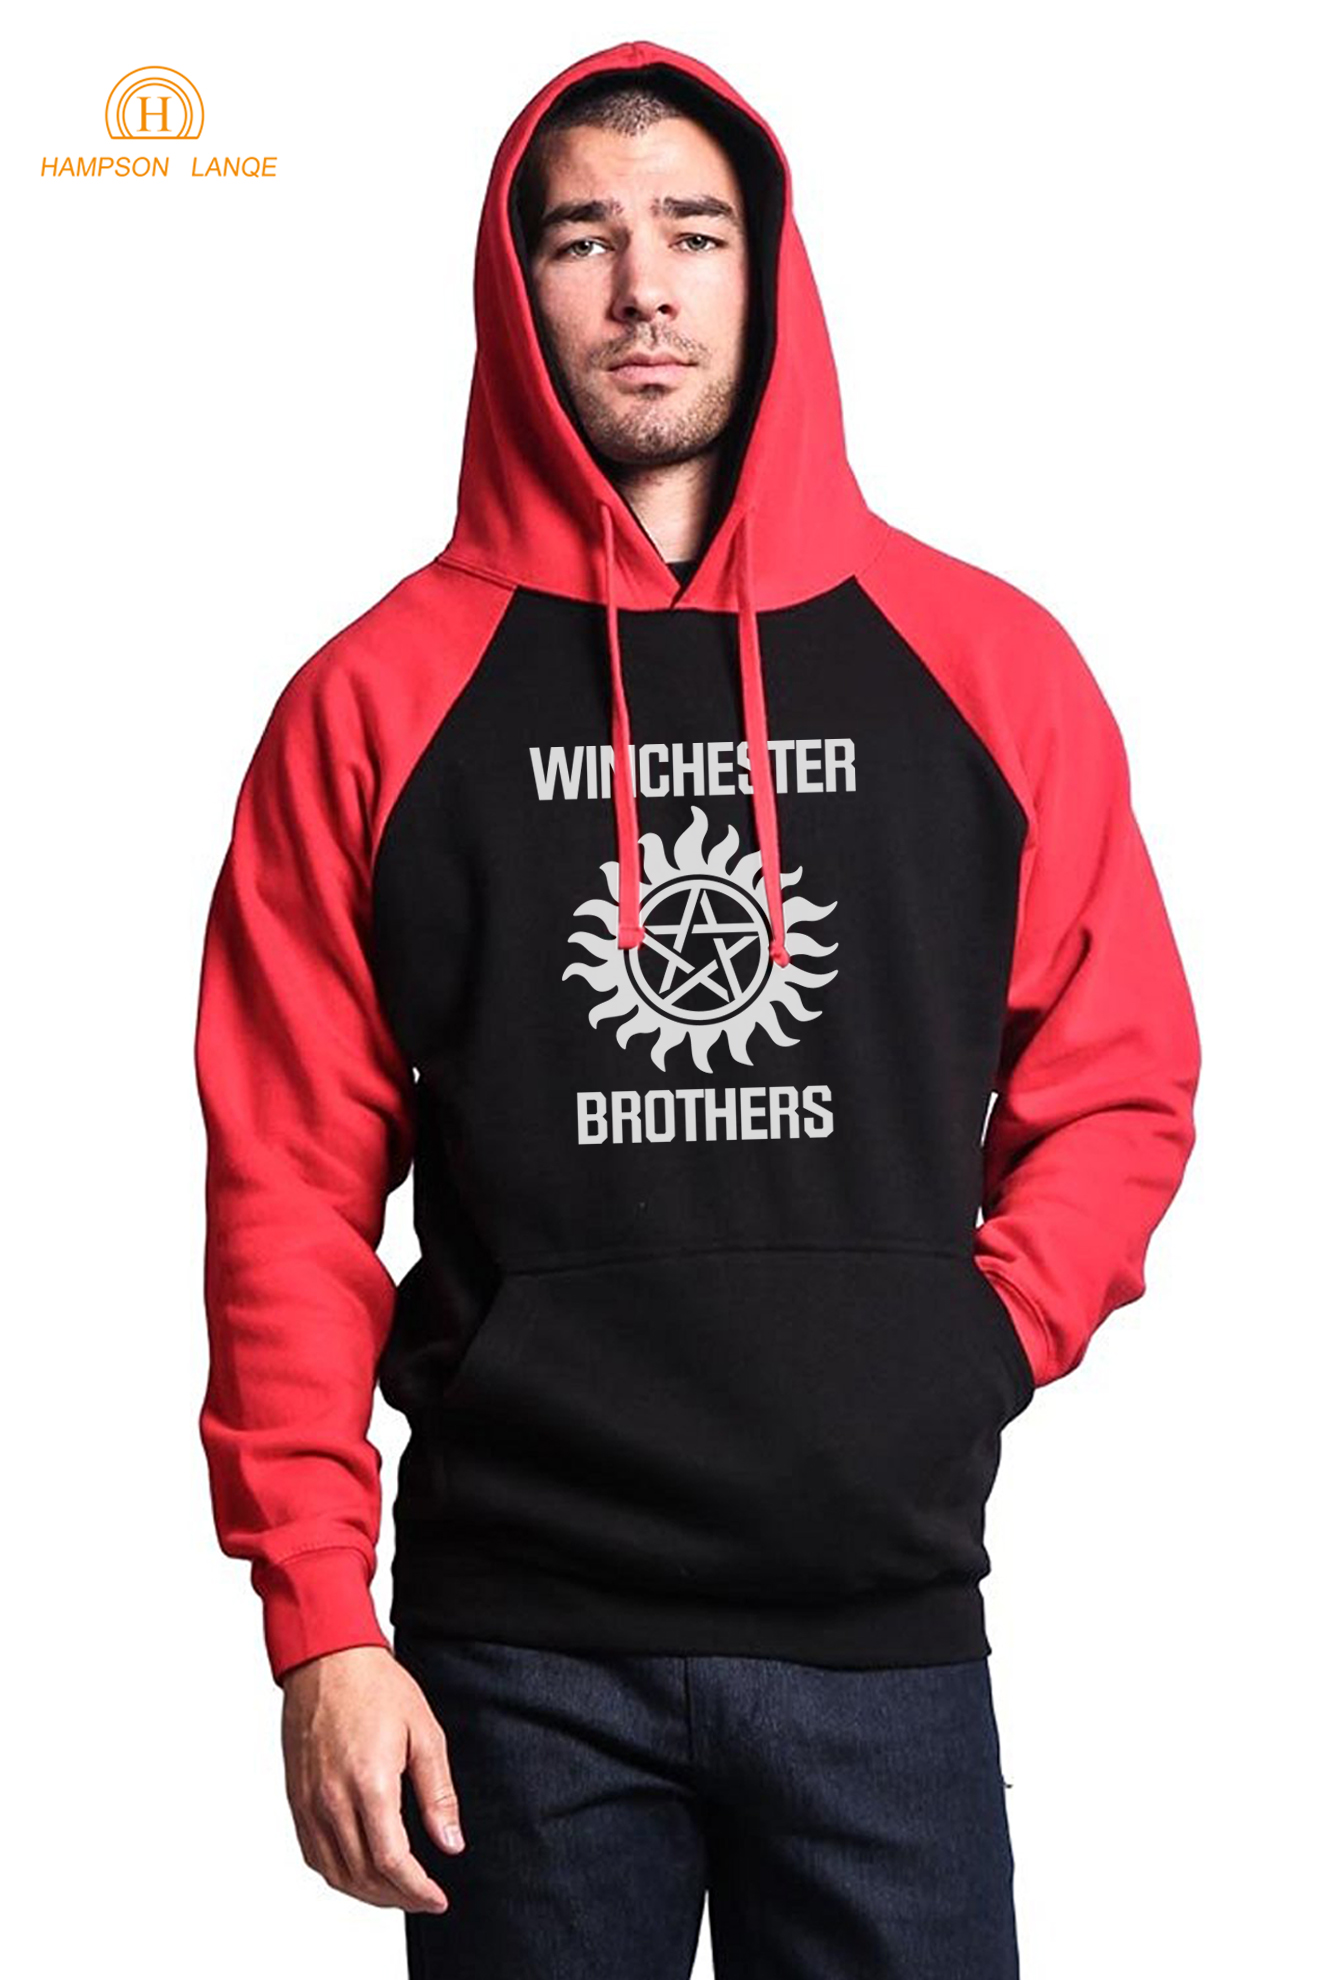 Winchester Brother Hipster Sweatshirts Hoodies Men 2019 Hot Autumn Winter Fleece Hooded Men Brand Sweatshirt Raglan Hooded S-XXL